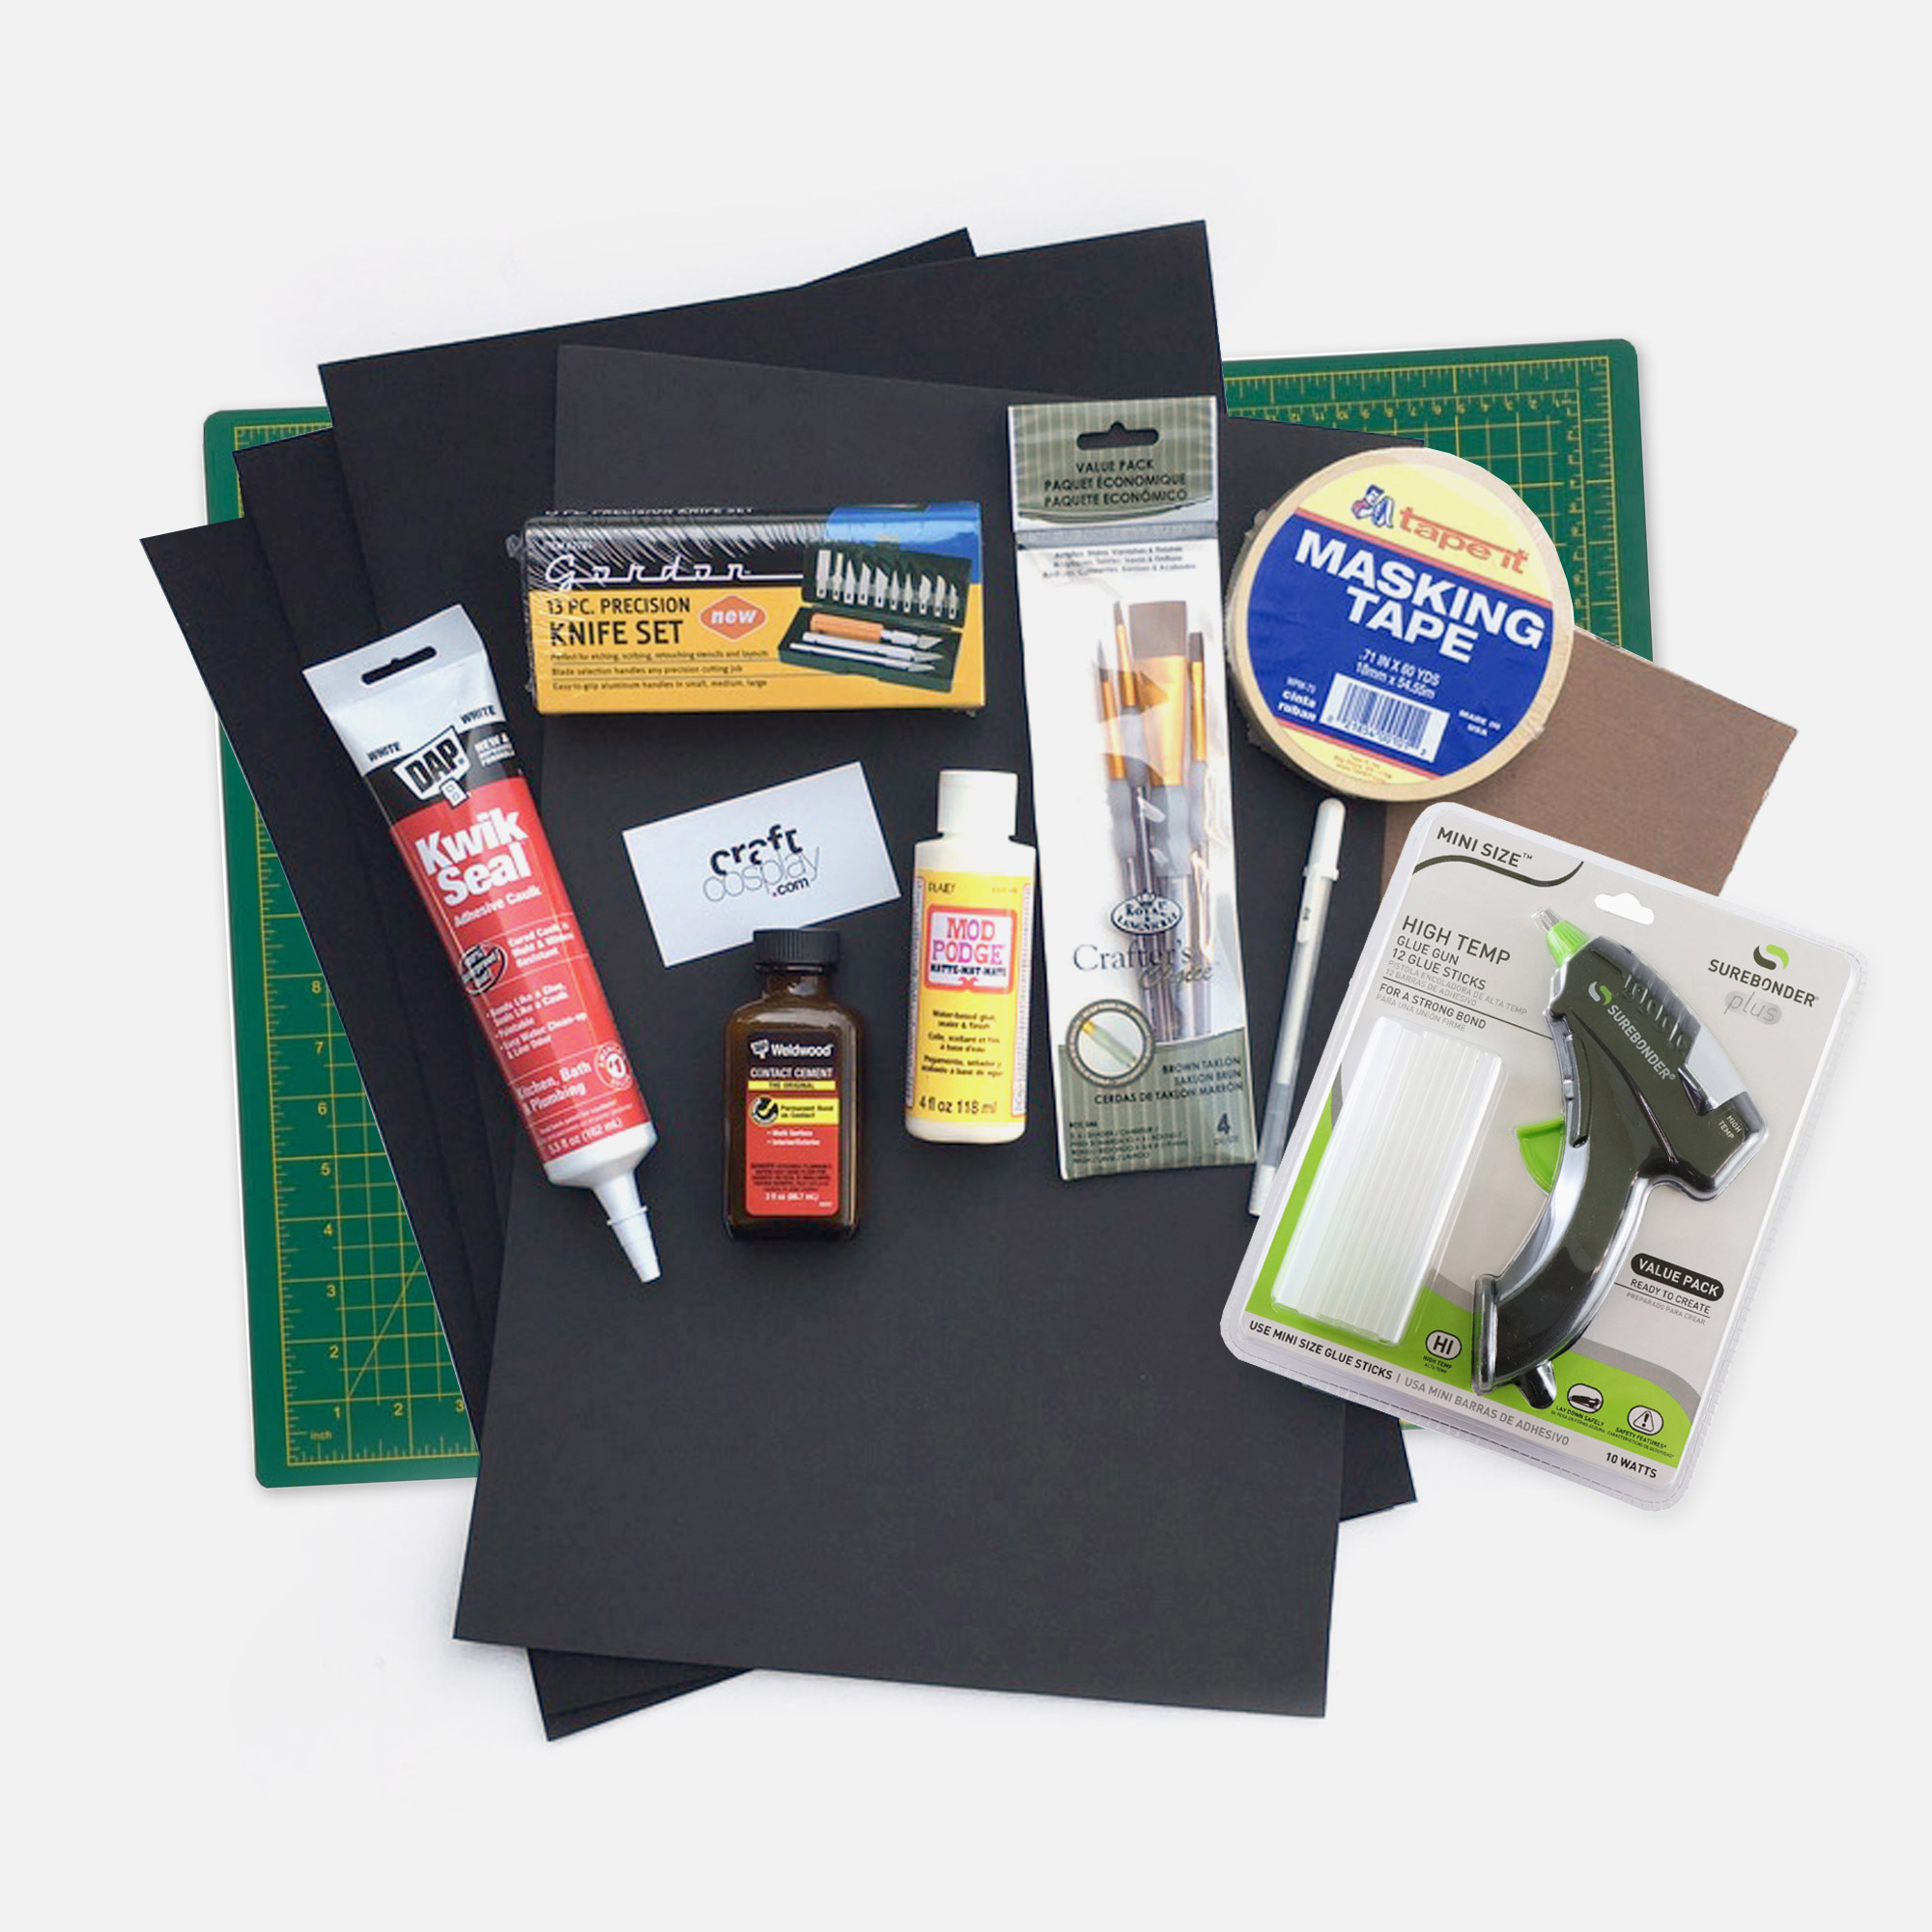 Kit Contents with Mat